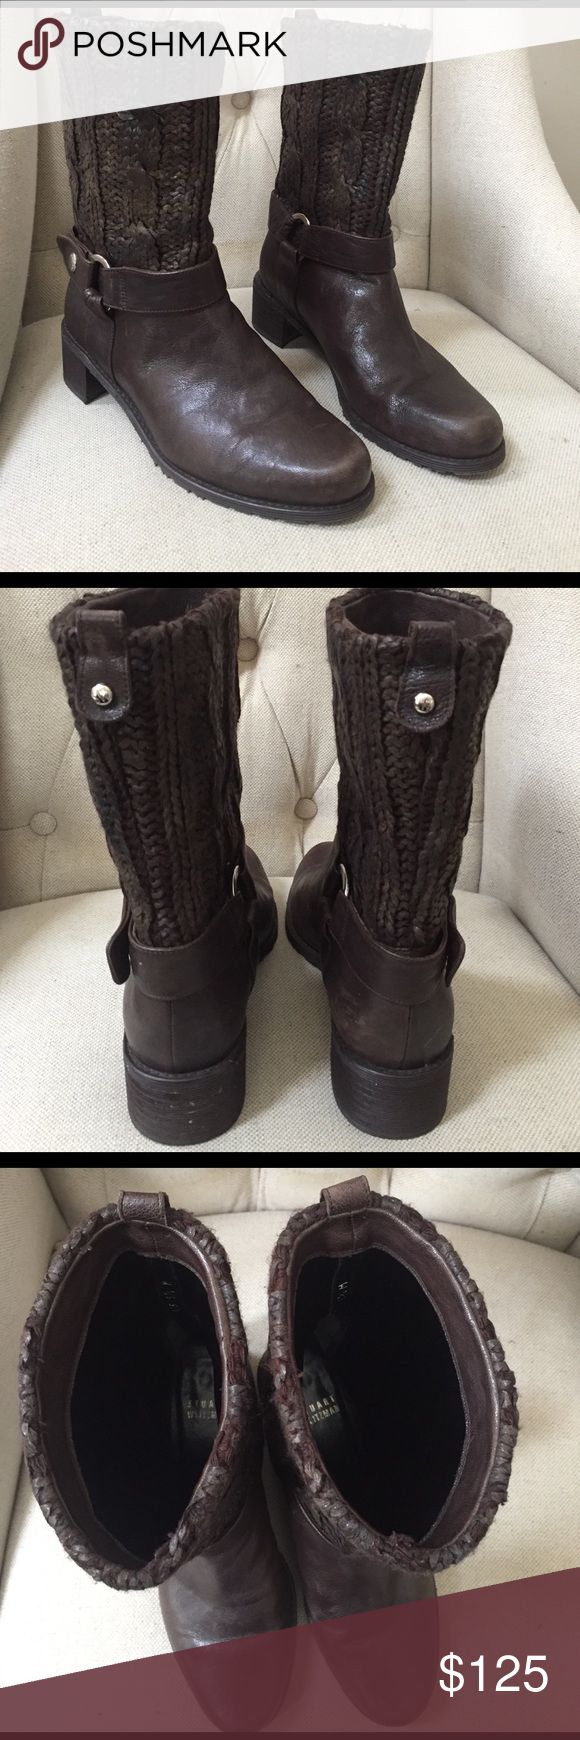 "Stuart Weitzman Pimlico Boots Unique mid calf boots from Stuart Weitzman! Rich dark brown color. Pull-on style is Lacquered Pimlico with a coated cable knit woven upper. Harness detail with silvertone buckle hardware for a motorcycle inspired look. Rubber sole and 1.75"" heel. In great condition! Stuart Weitzman Shoes Heeled Boots"